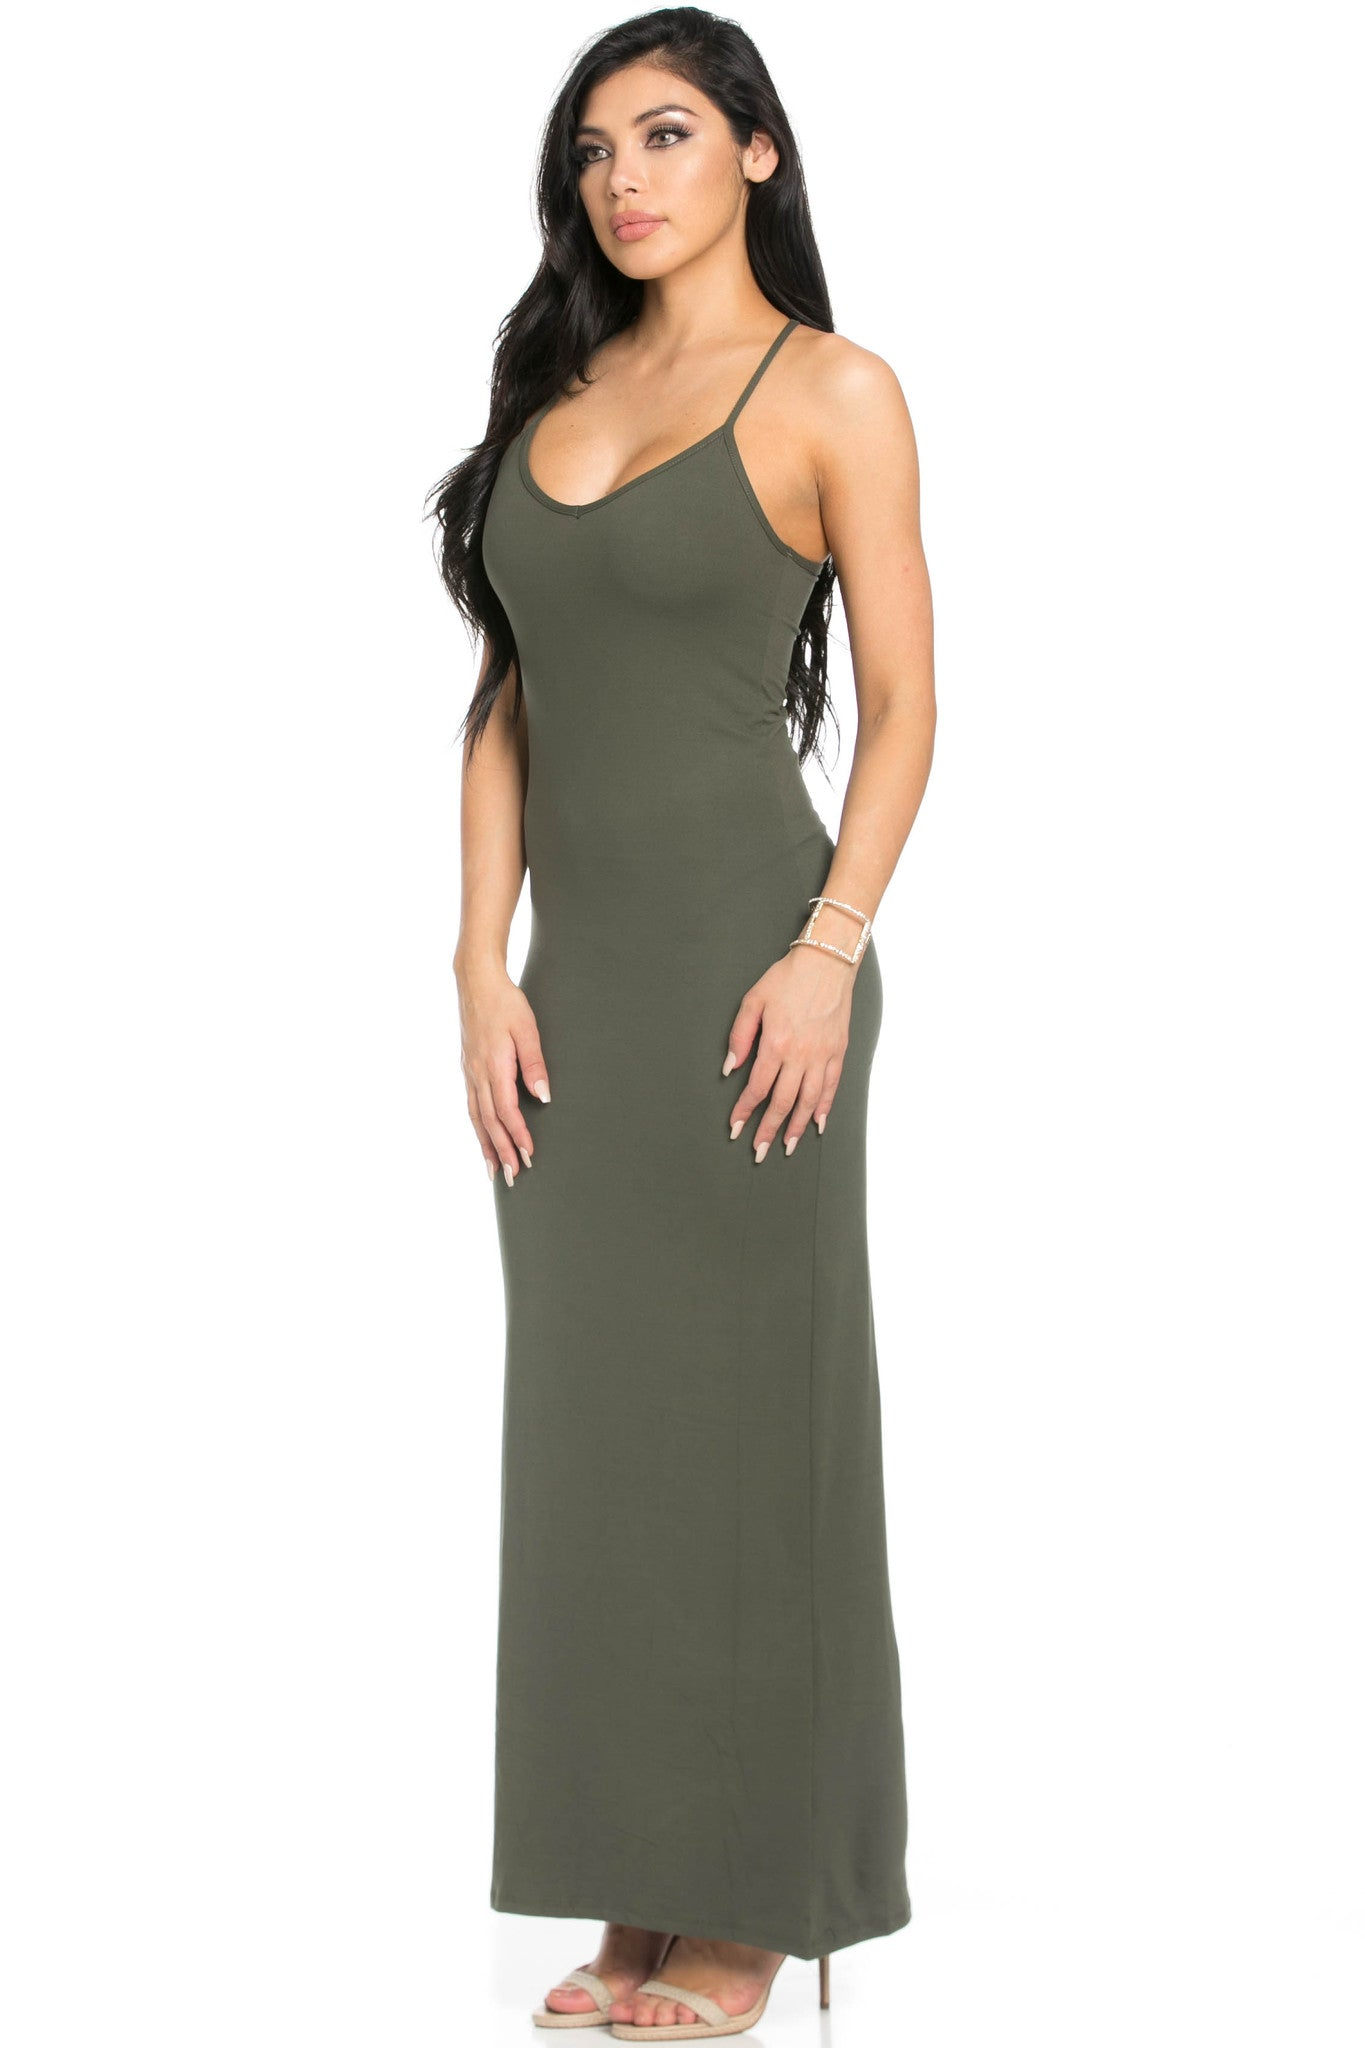 Micro Suede Olive Maxi Dress - Dresses - My Yuccie - 2